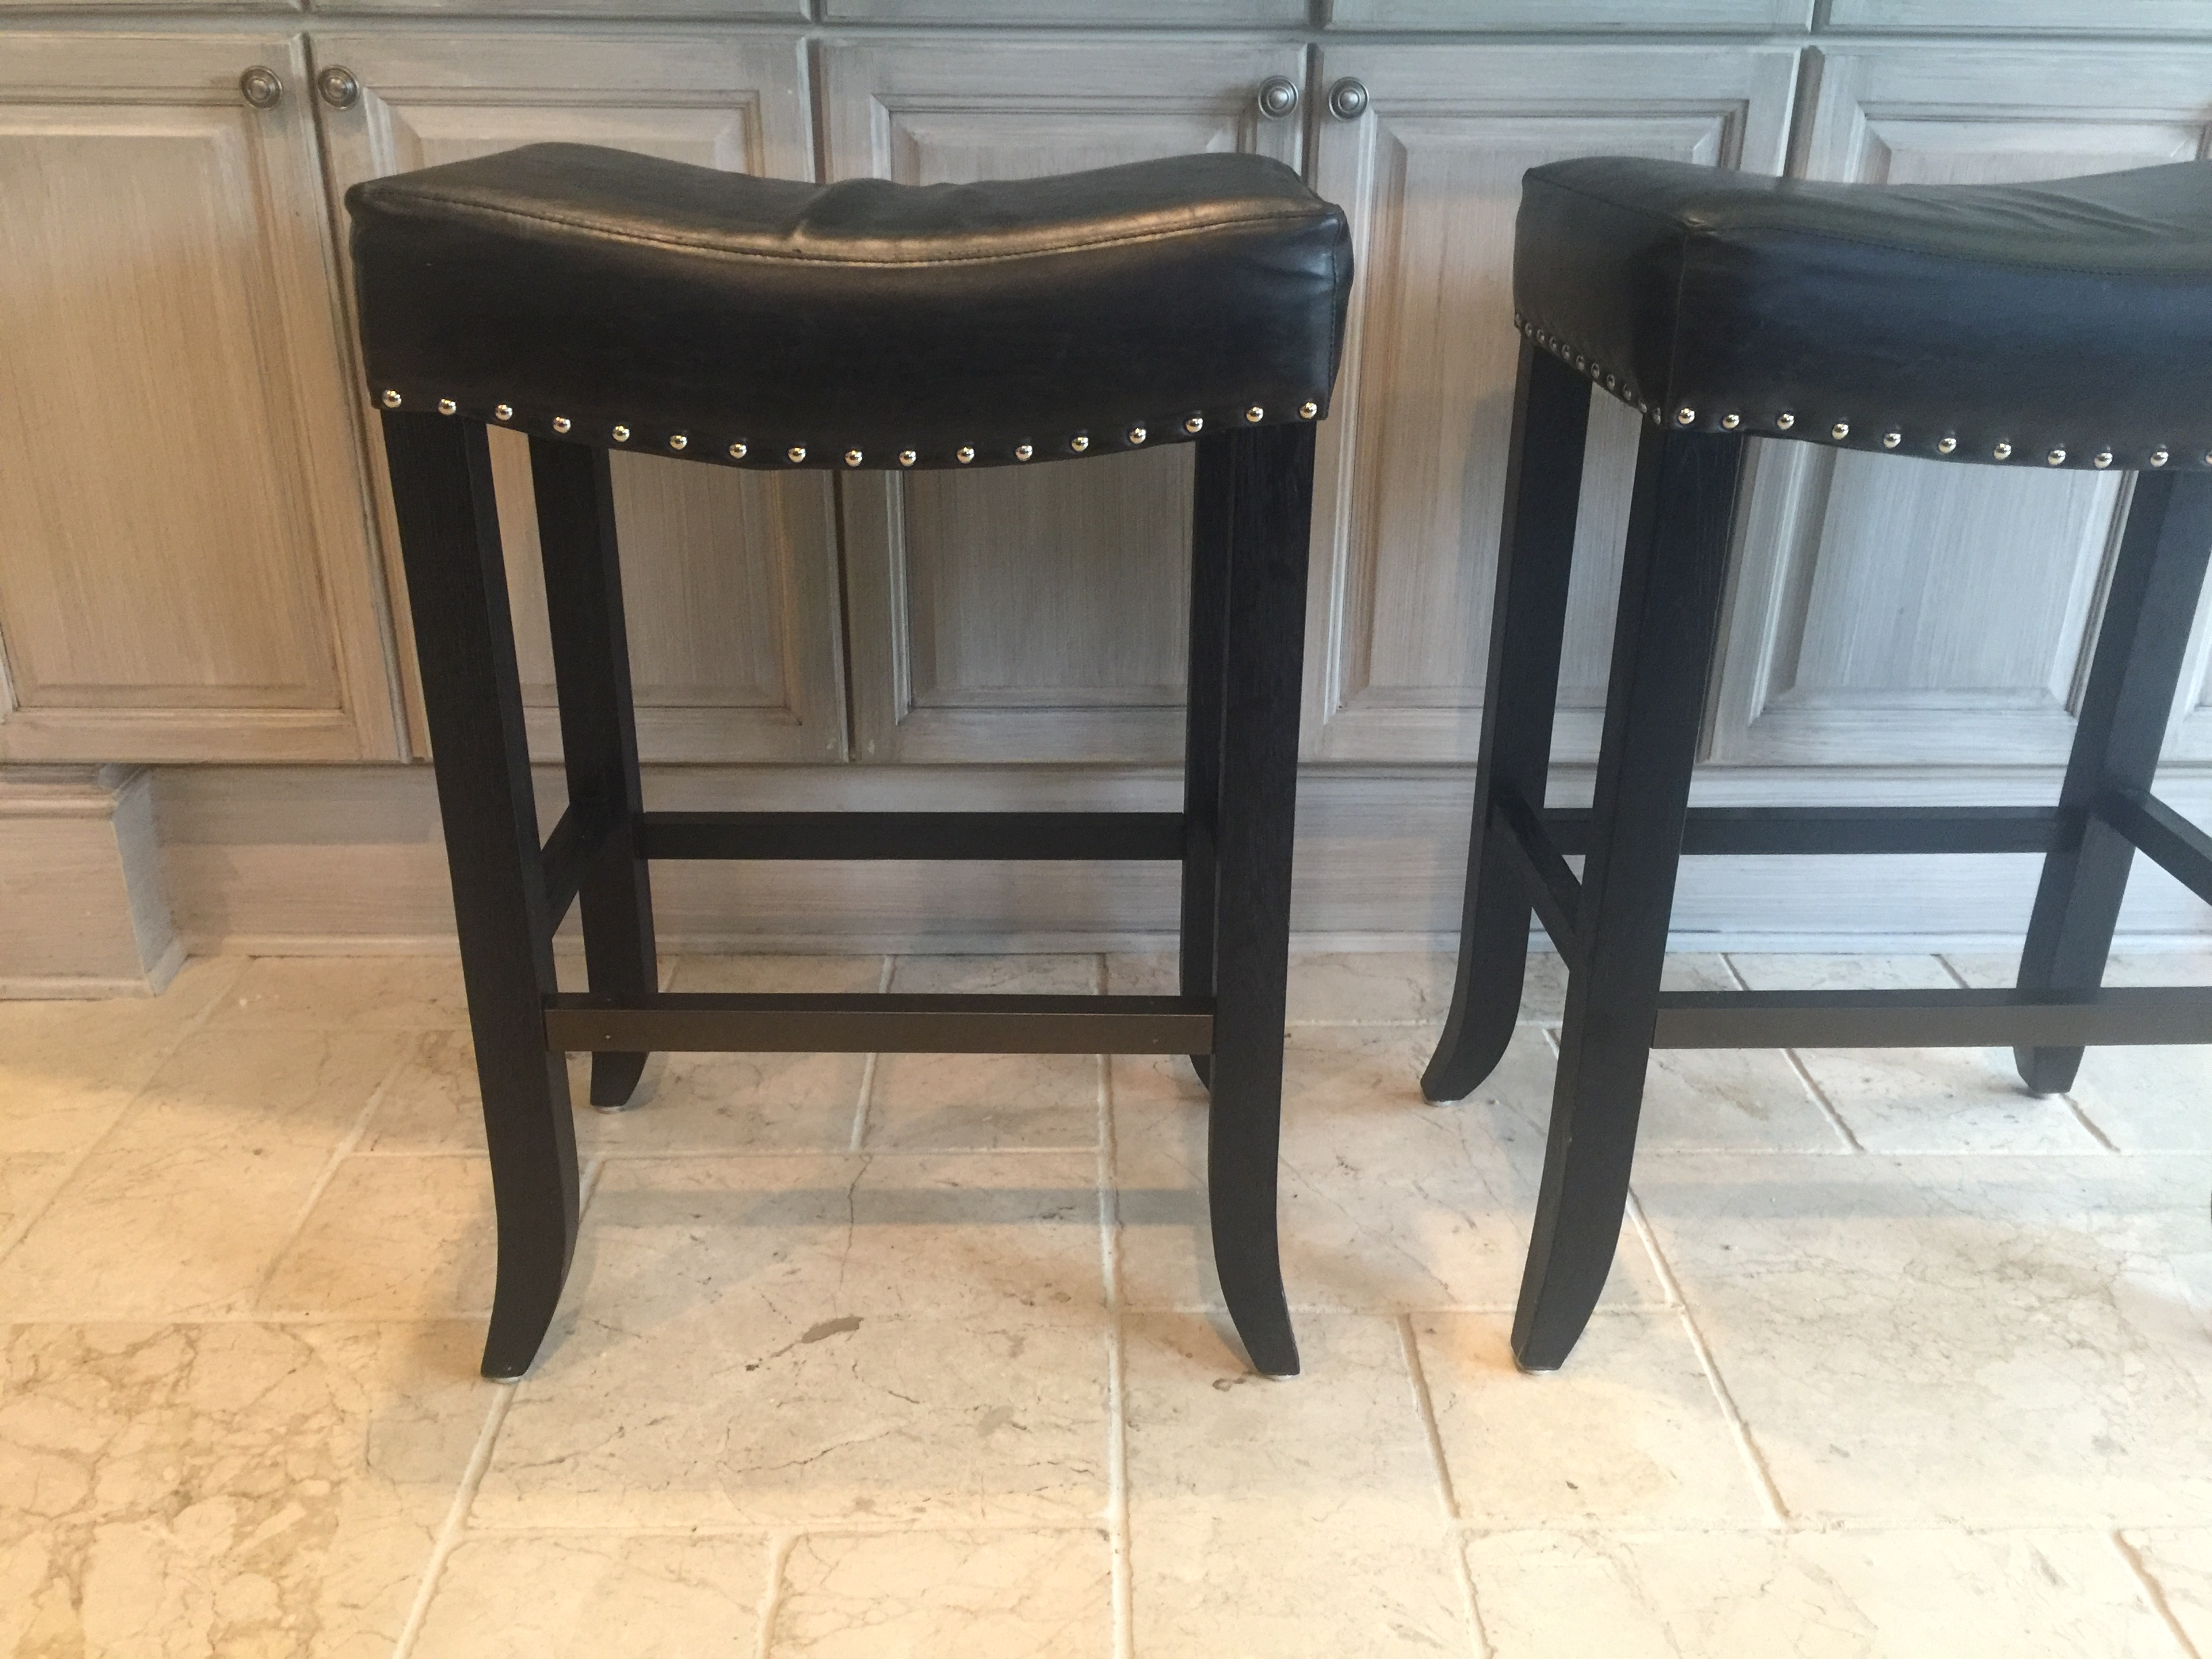 chair leg glides for wood floors accent office chairs furniture and protectors that actually work